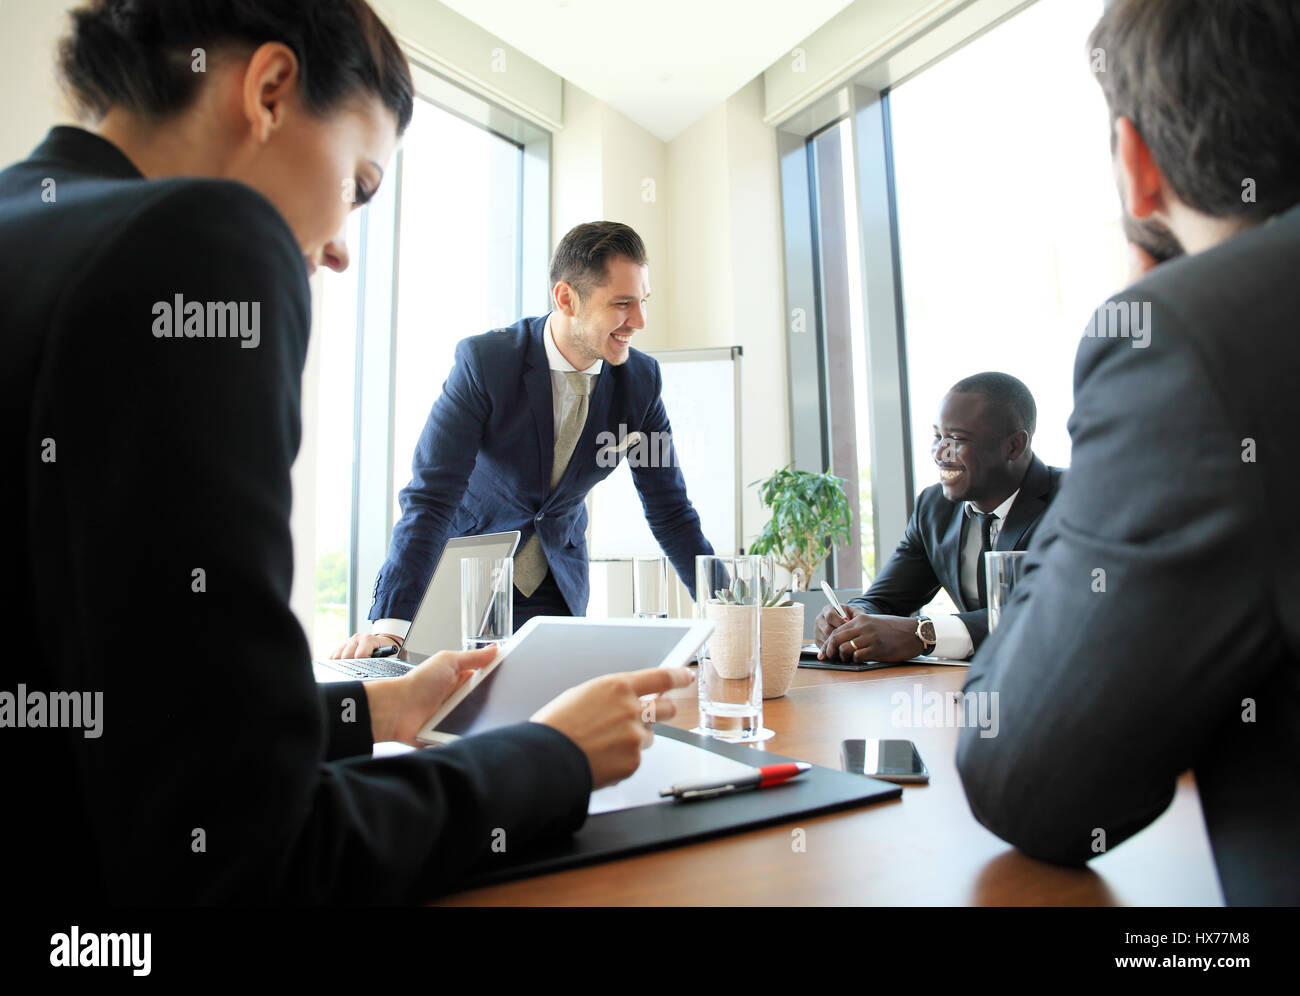 Entrepreneurs and business people conference in modern meeting room. Stock Photo